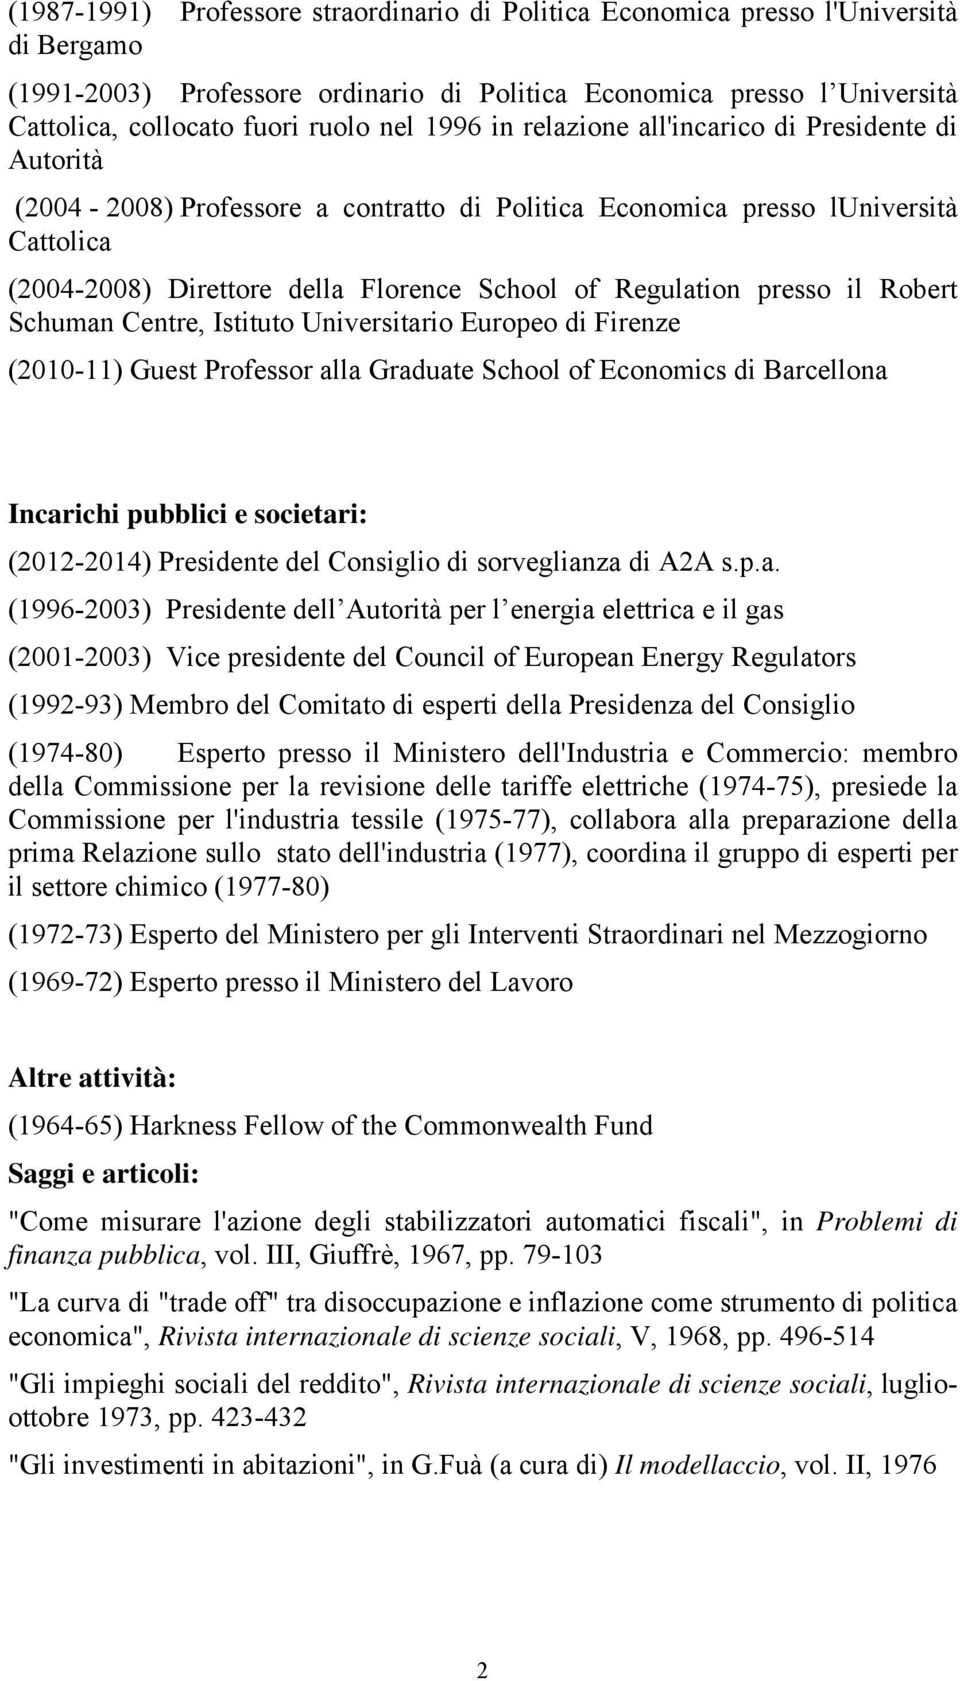 Regulation presso il Robert Schuman Centre, Istituto Universitario Europeo di Firenze (2010-11) Guest Professor alla Graduate School of Economics di Barcellona Incarichi pubblici e societari: